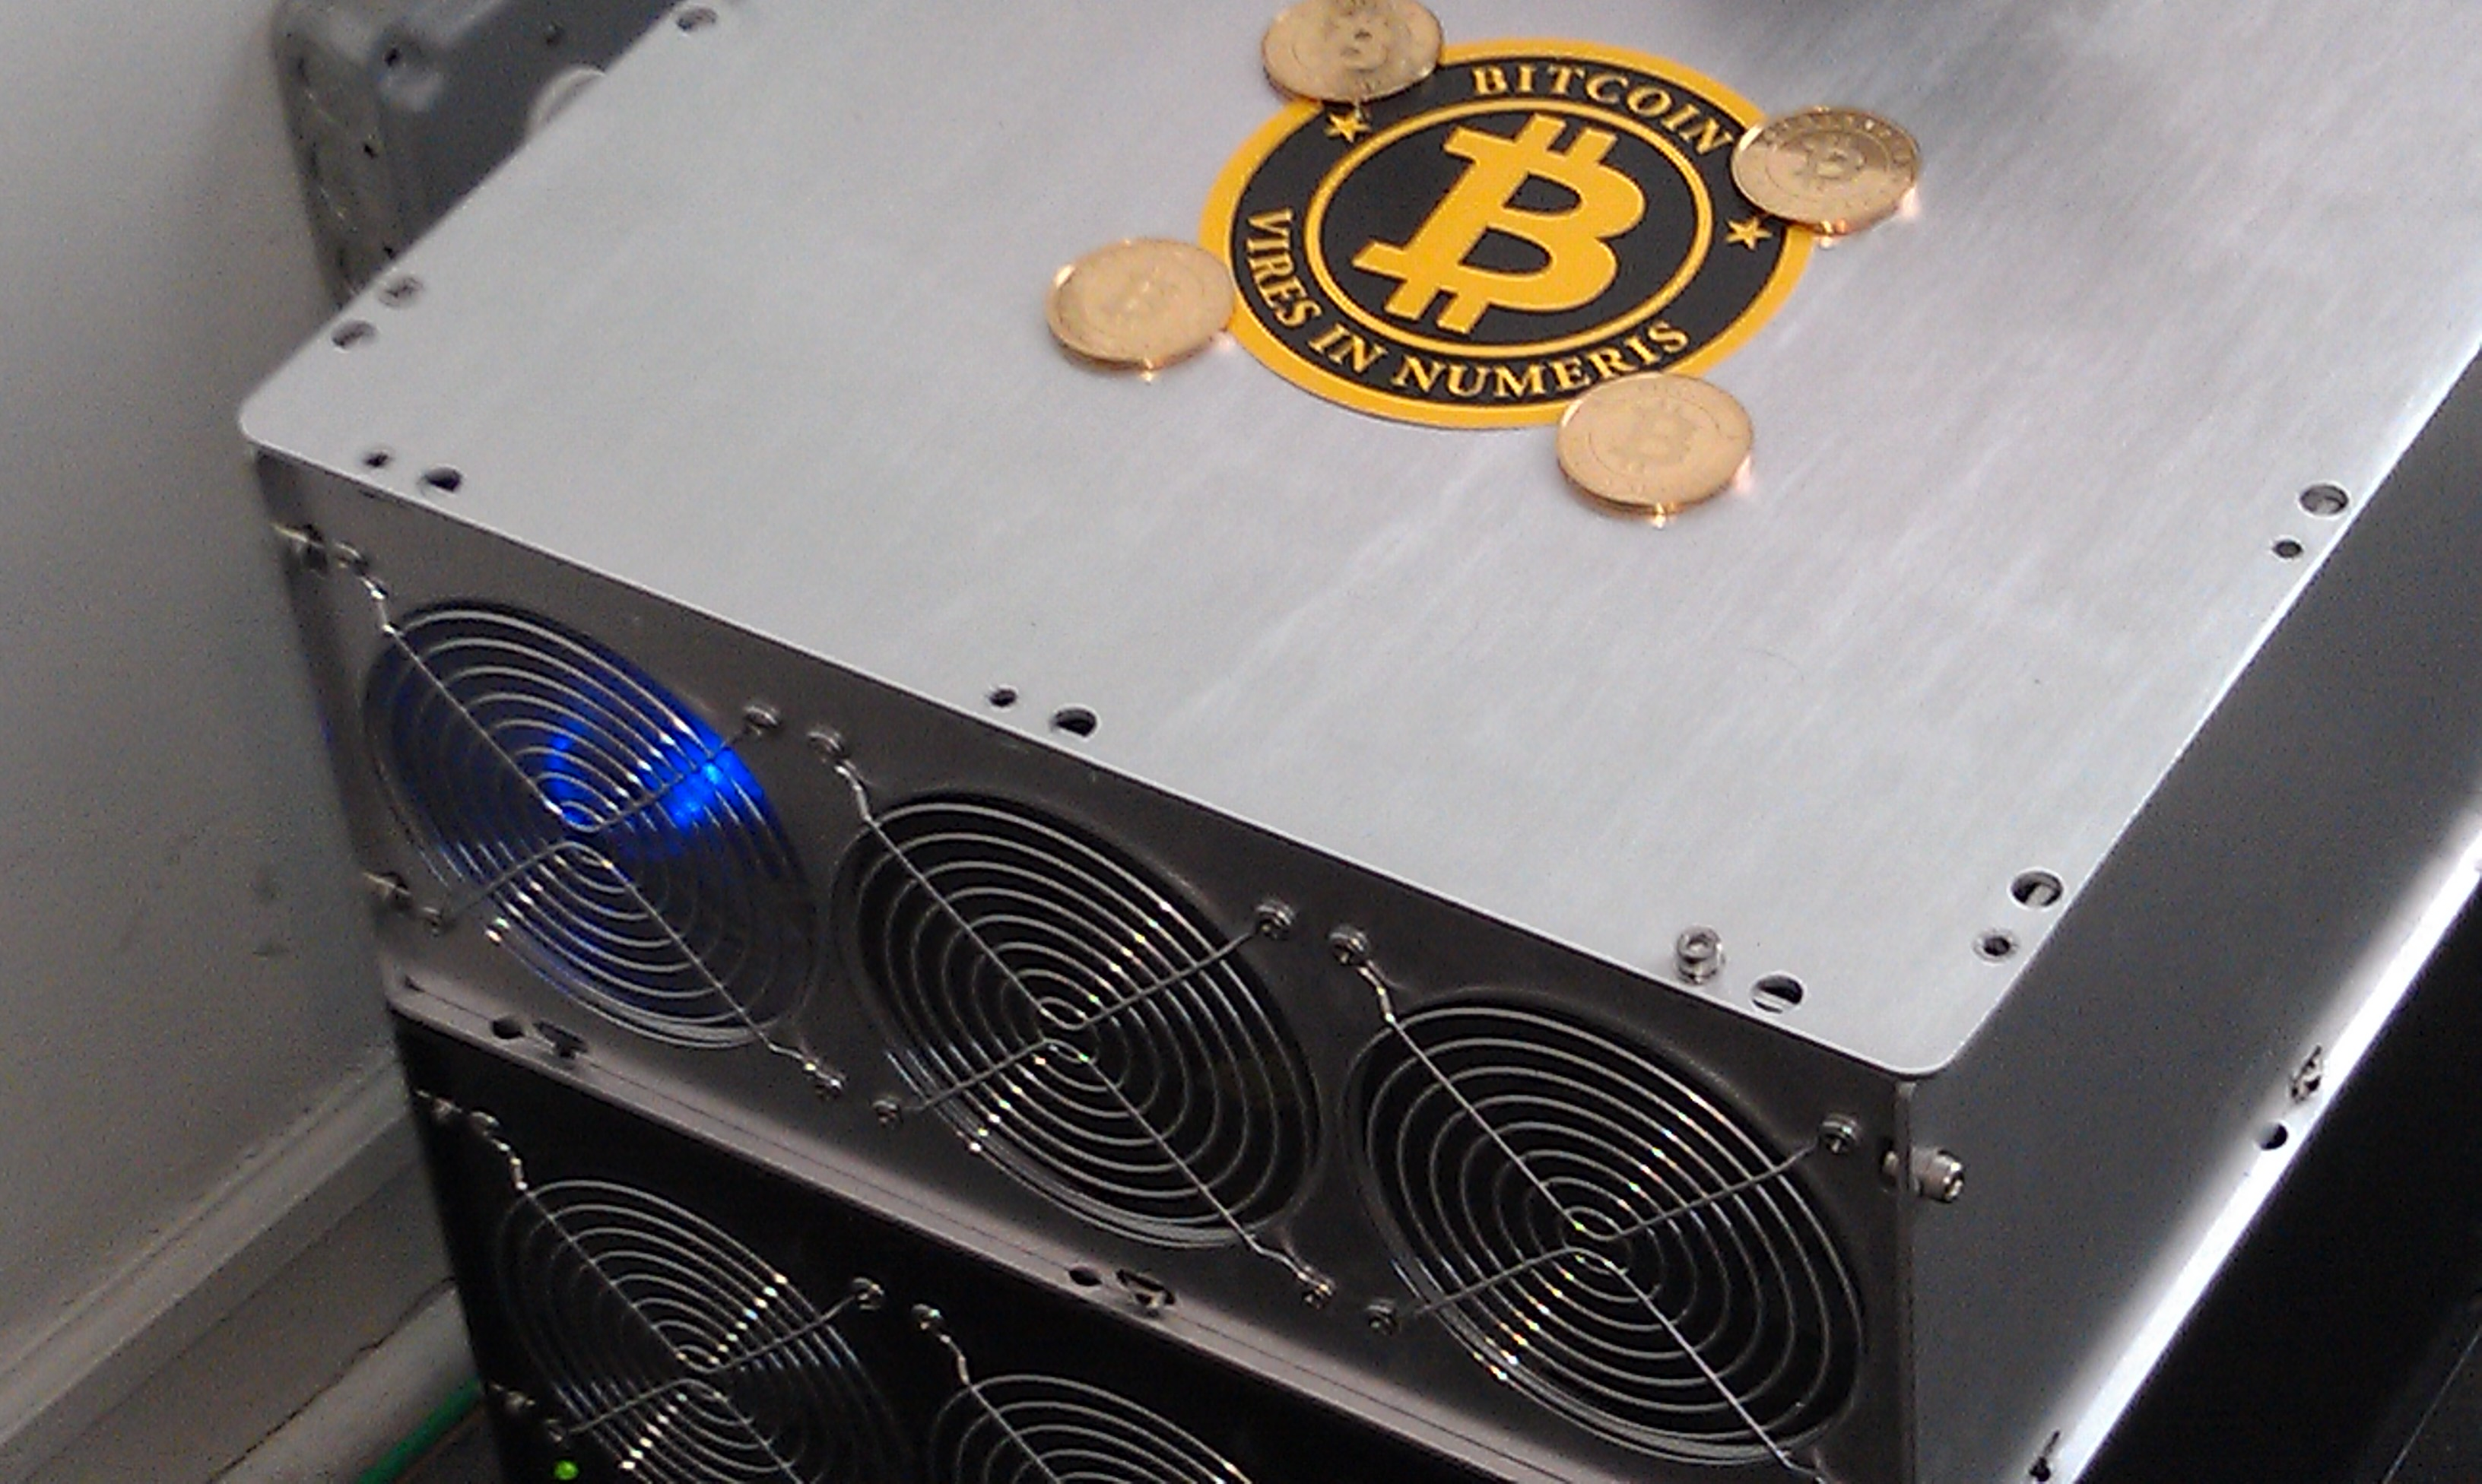 Bitcoin Mining Vs Gold A Comparison